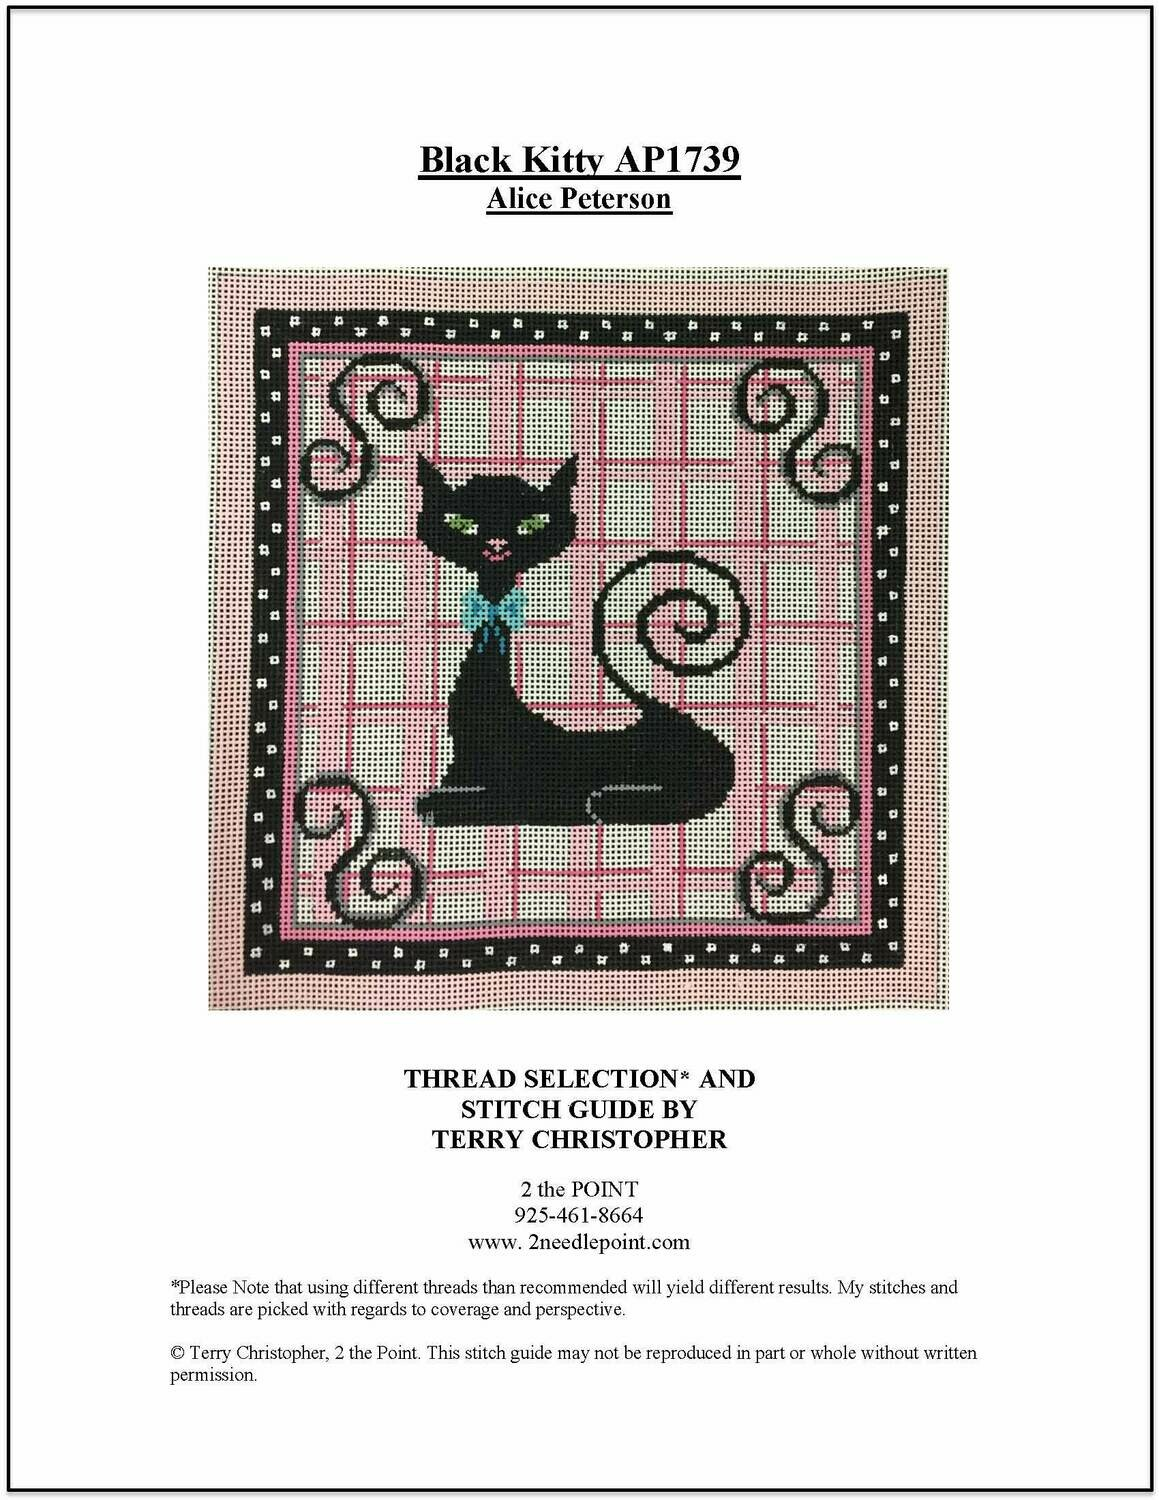 Alice Peterson, Black Kitty AP1739